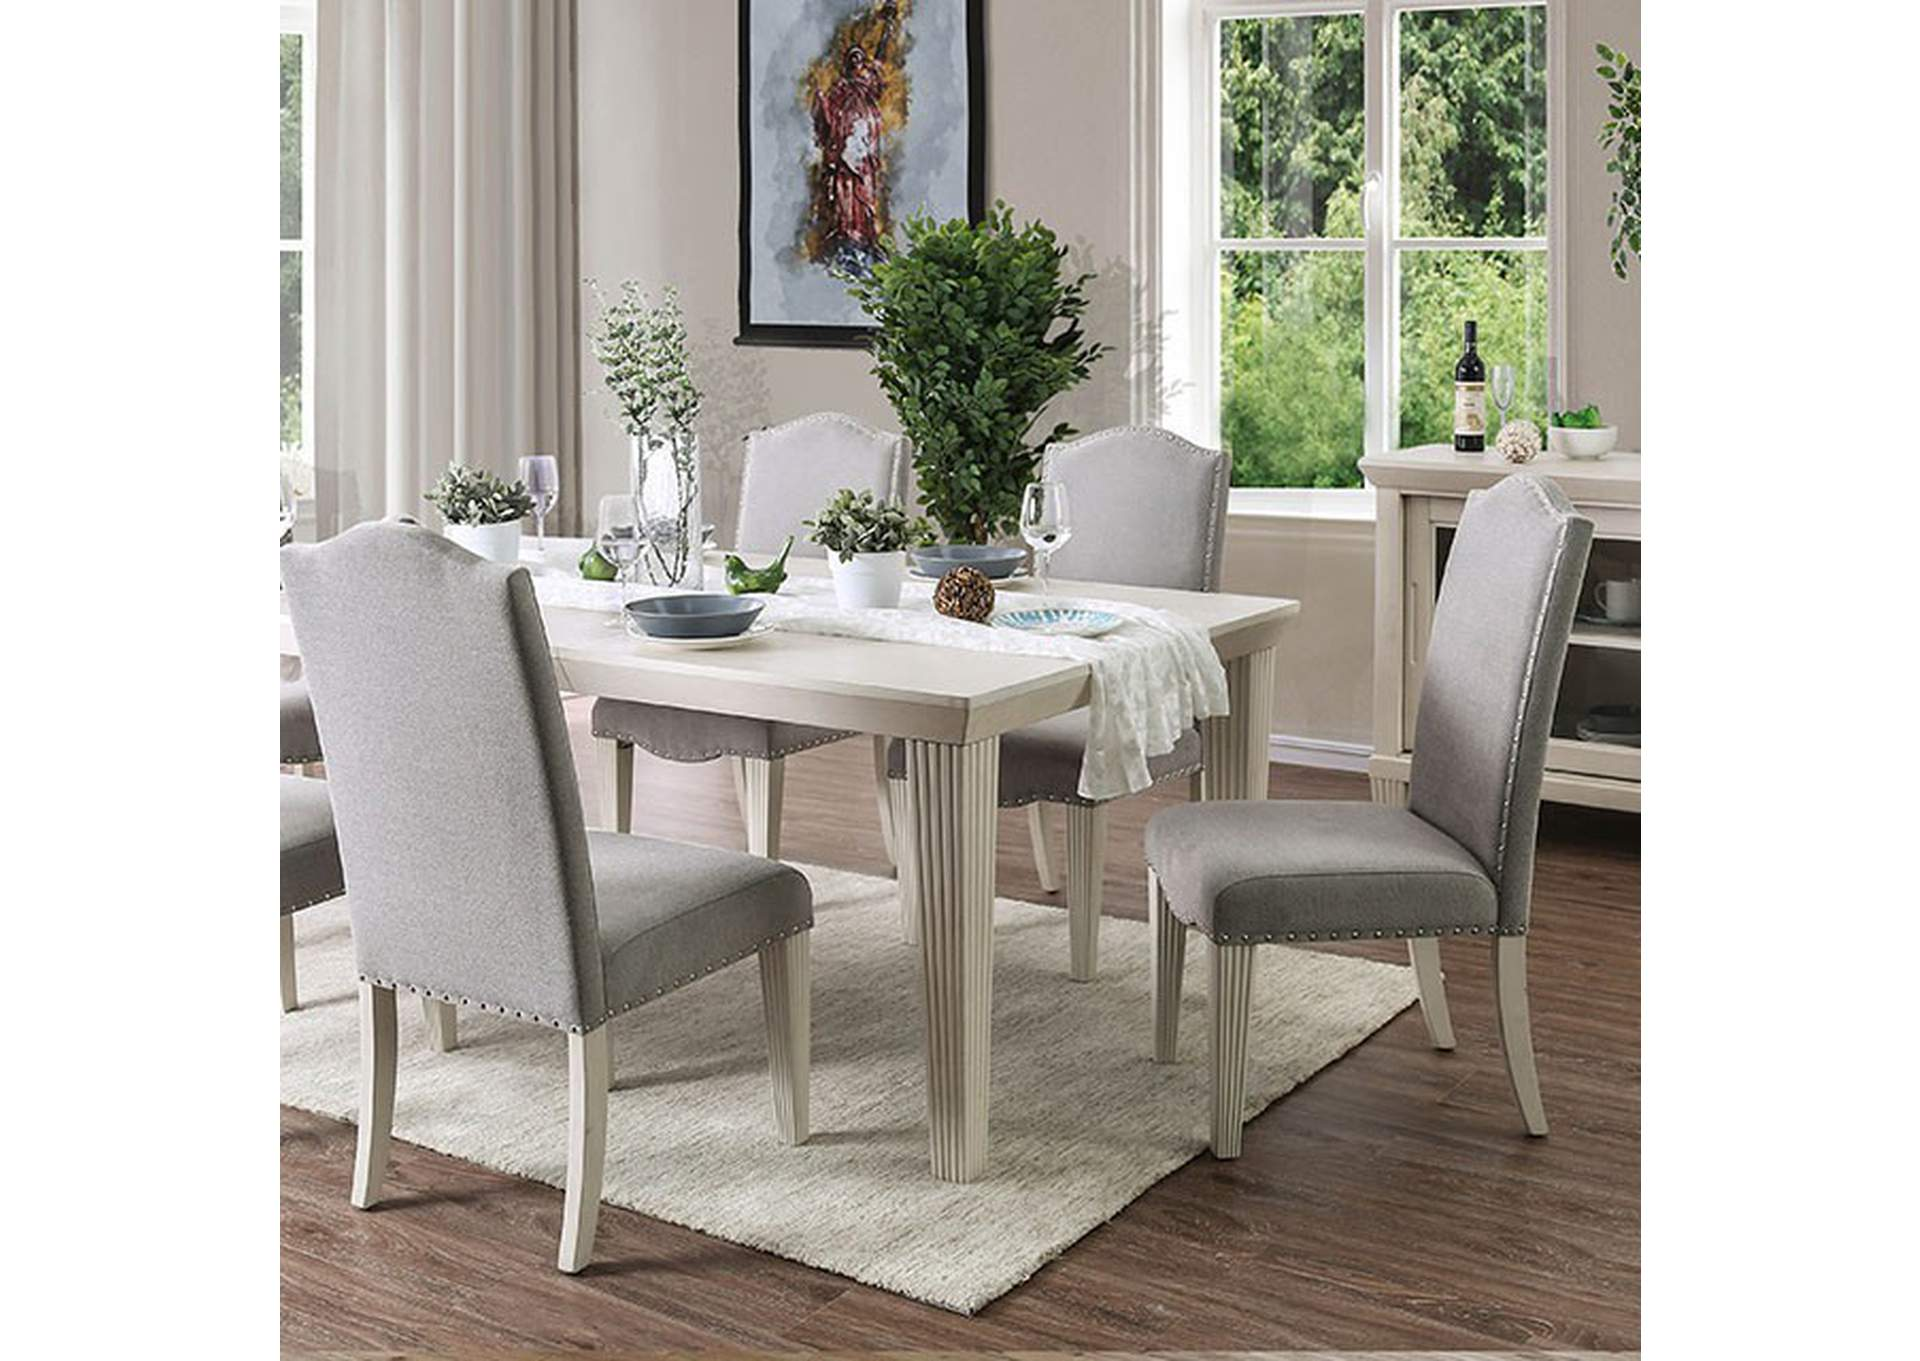 Daniella Dining Table,Furniture of America